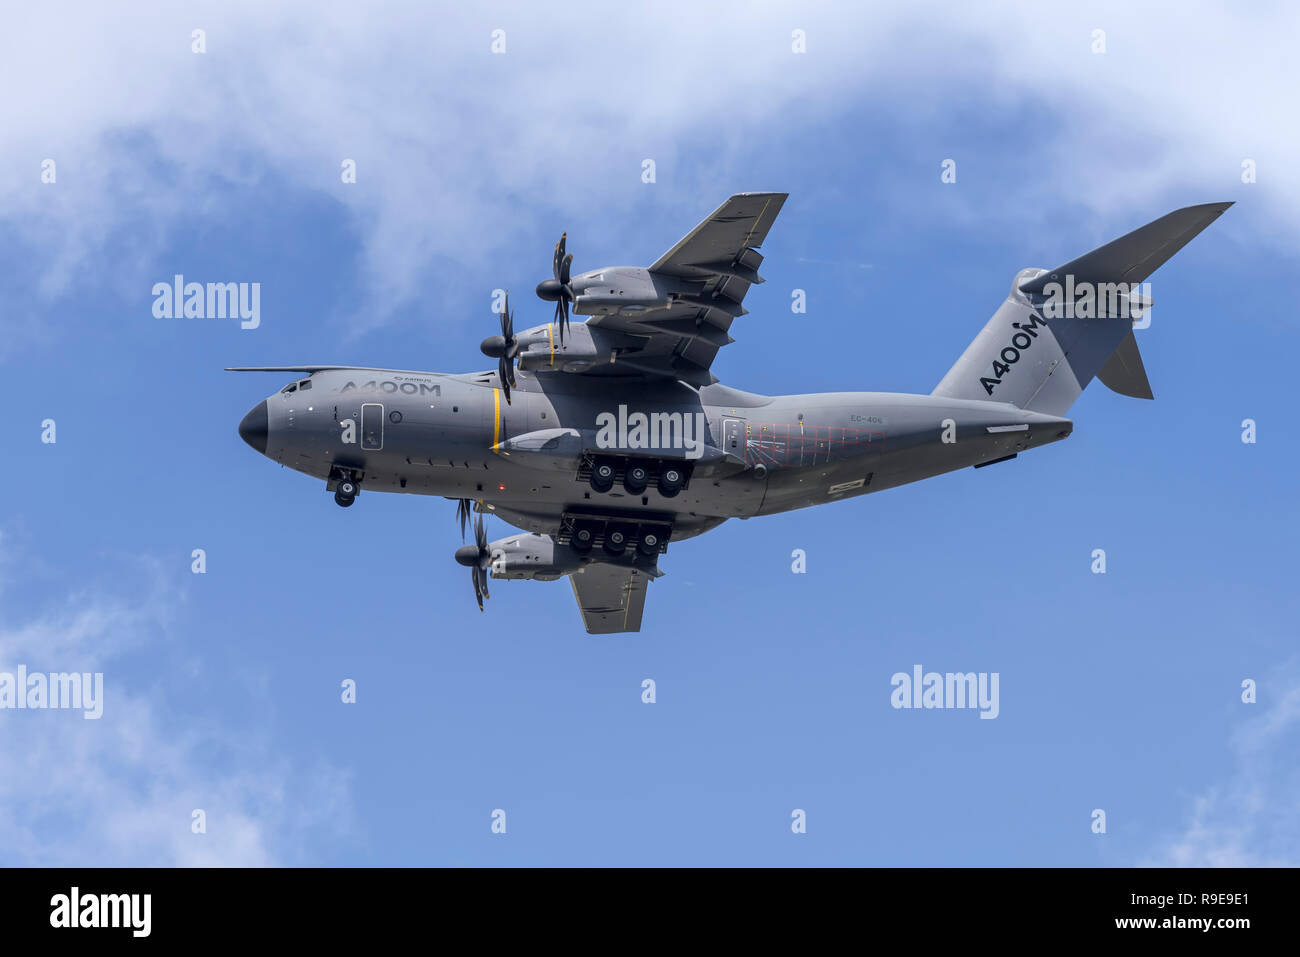 Airbus A400M Atlas military transport aircraft performs a dirty pass (wheels down), flying overhead from right to left. - Stock Image